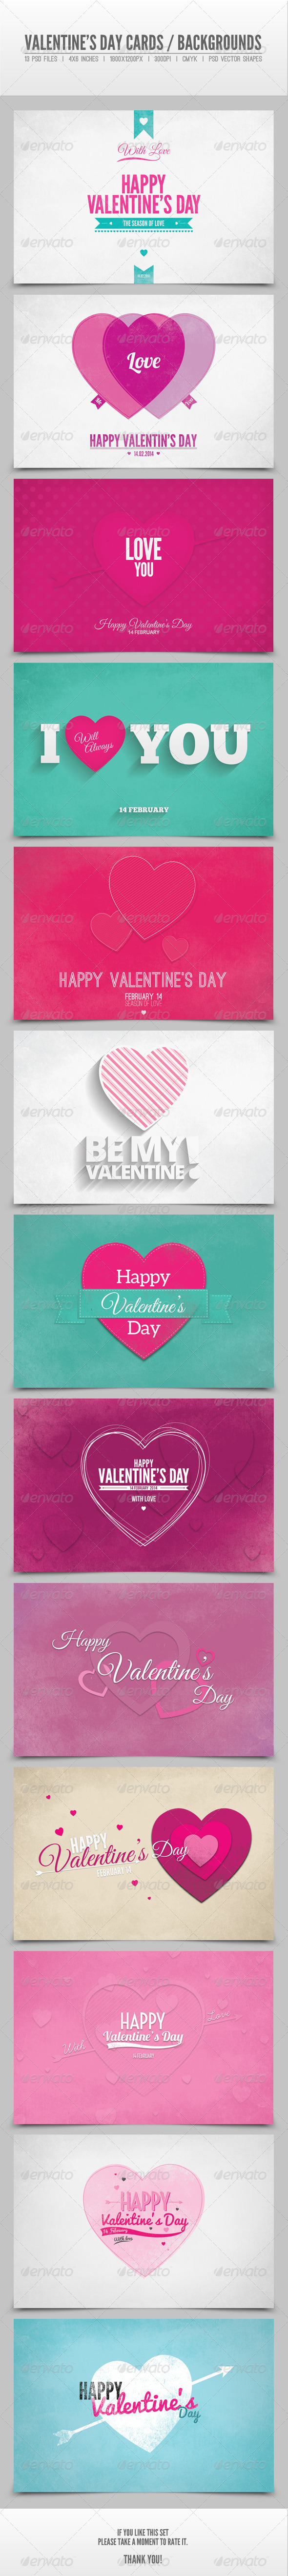 GraphicRiver Valentine s Day Cards Backgrounds Vol.3 6548045